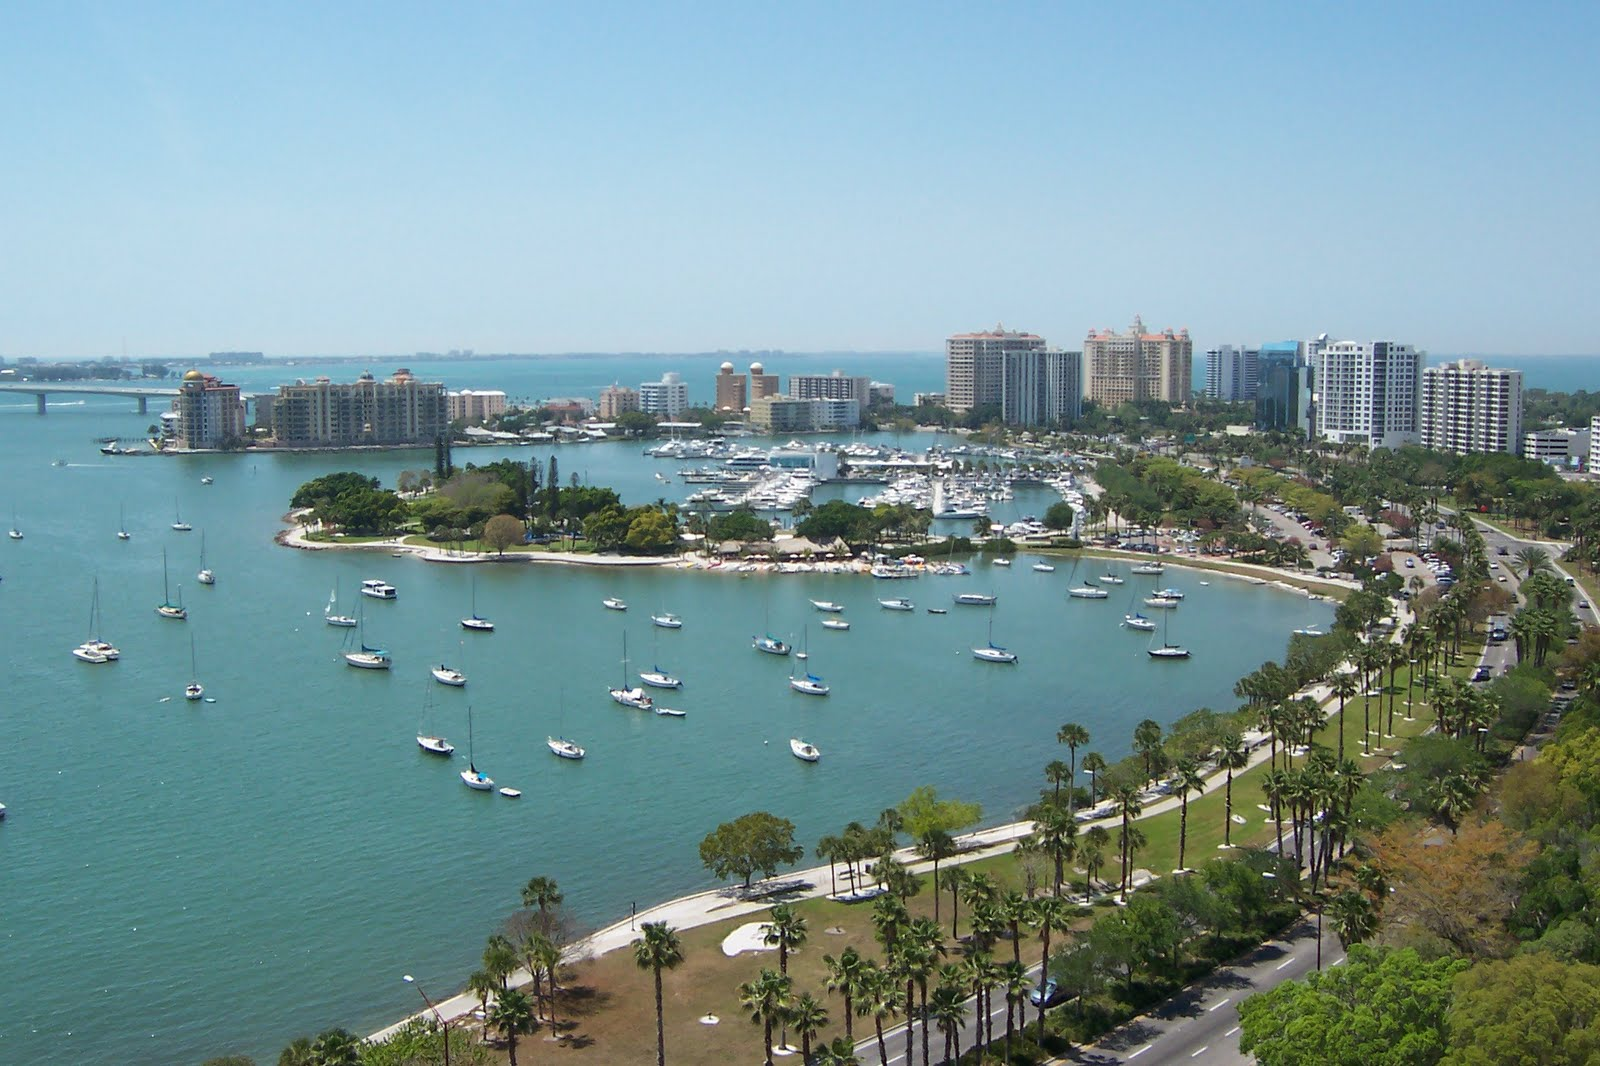 Sarasota offers safe, family friendly communities within close proximity of schools that offer unique educational experiences such as performing arts and career programs.